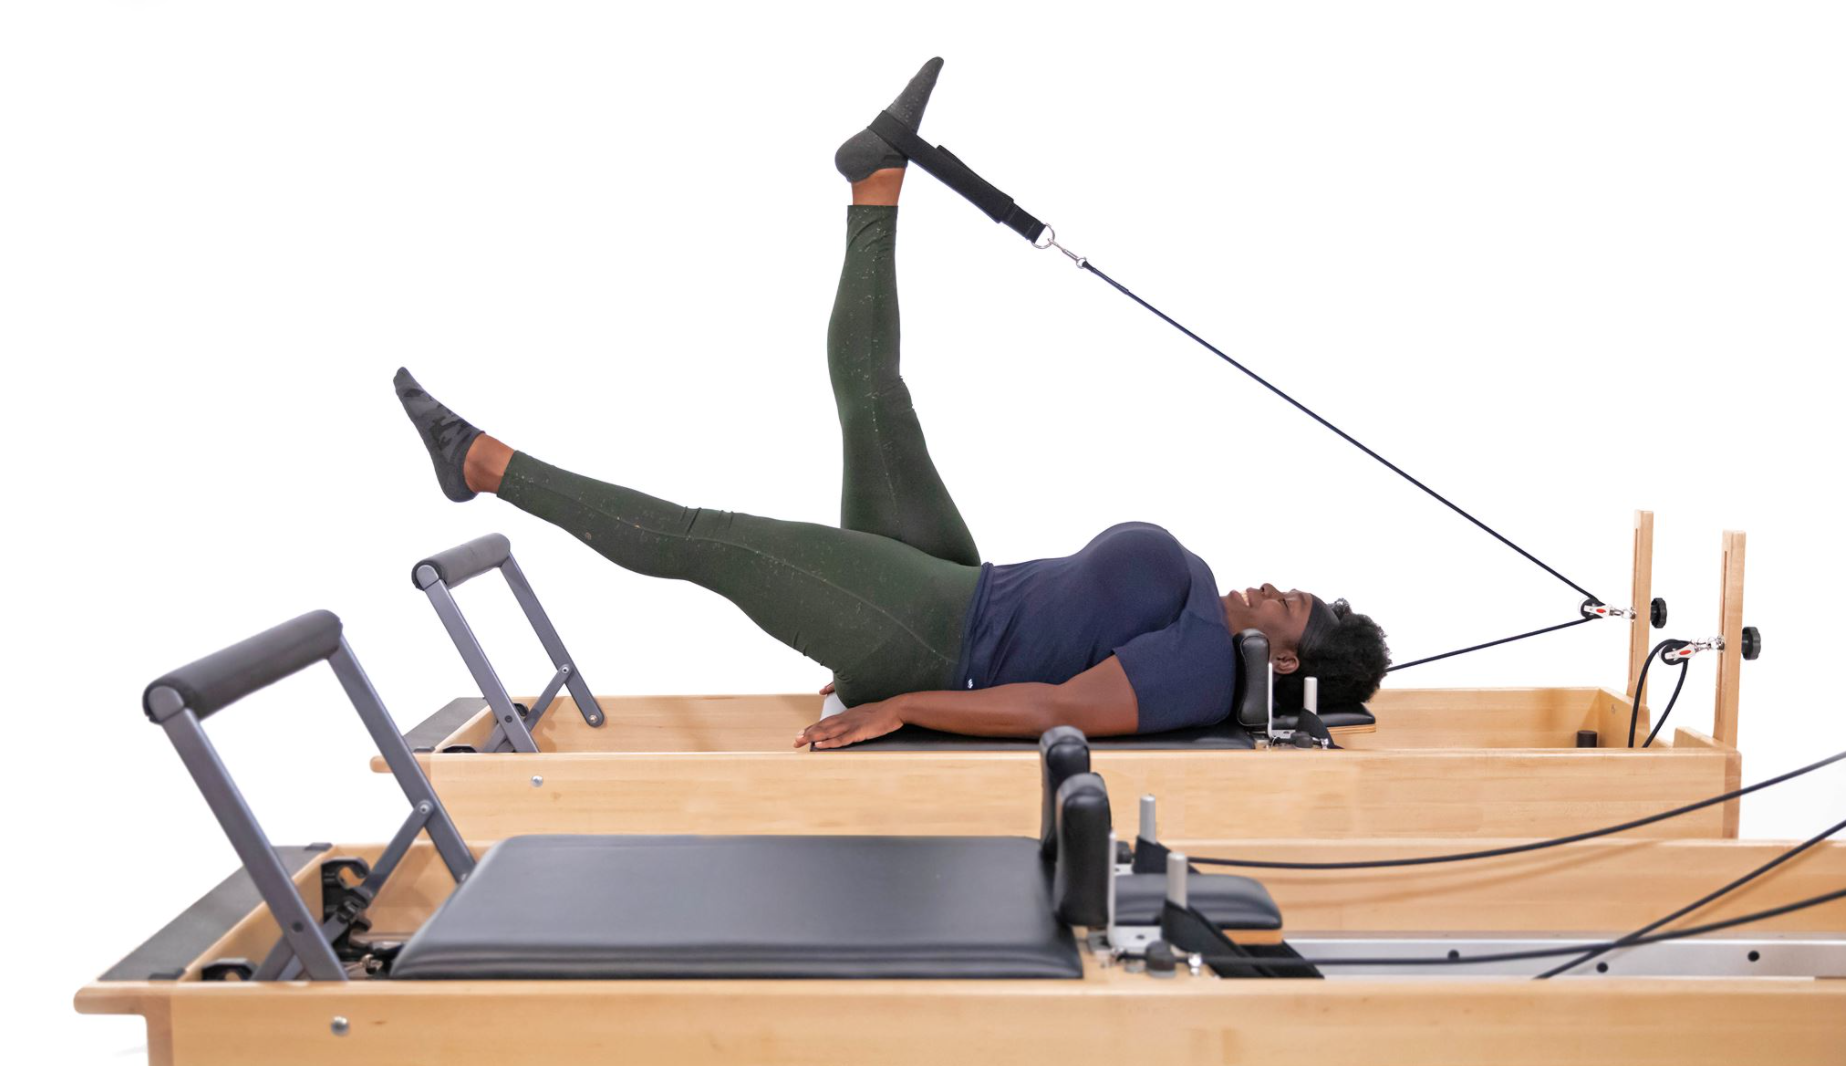 What's a Pilates Machine and How do You Use One?